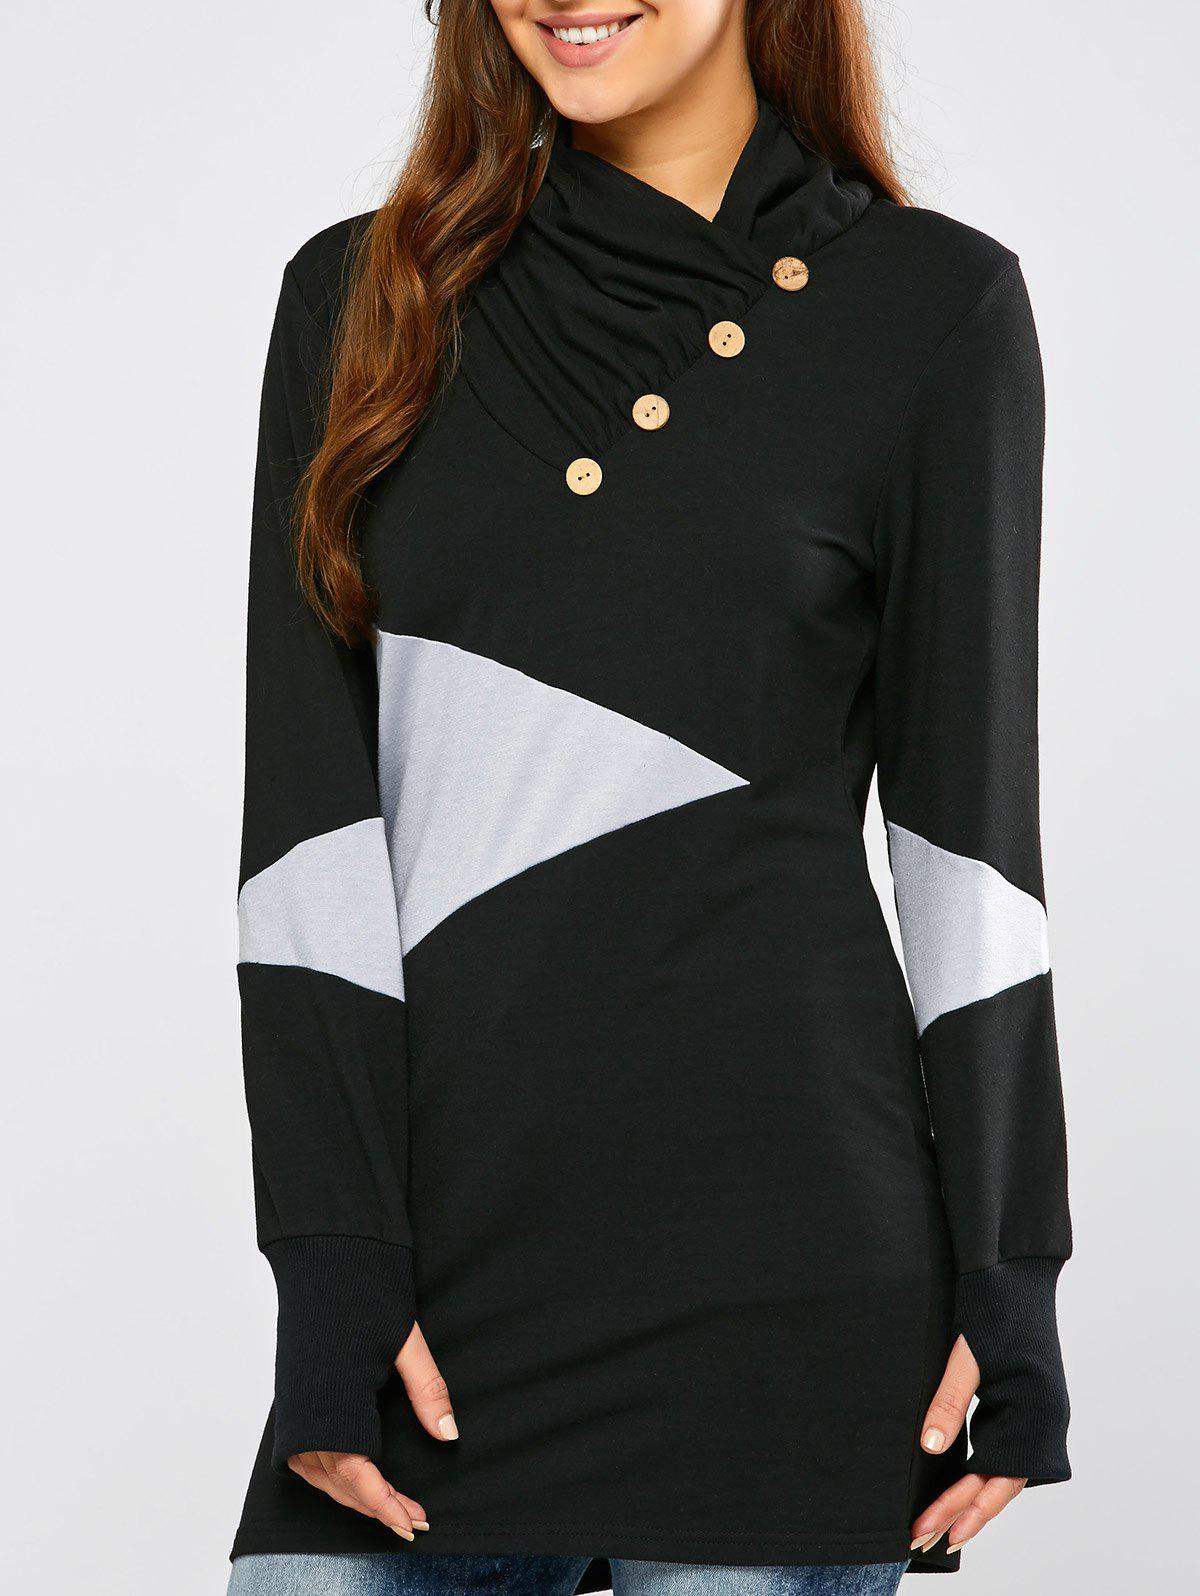 Casual Geometric Mini Sweatshirt Dress - BLACK S